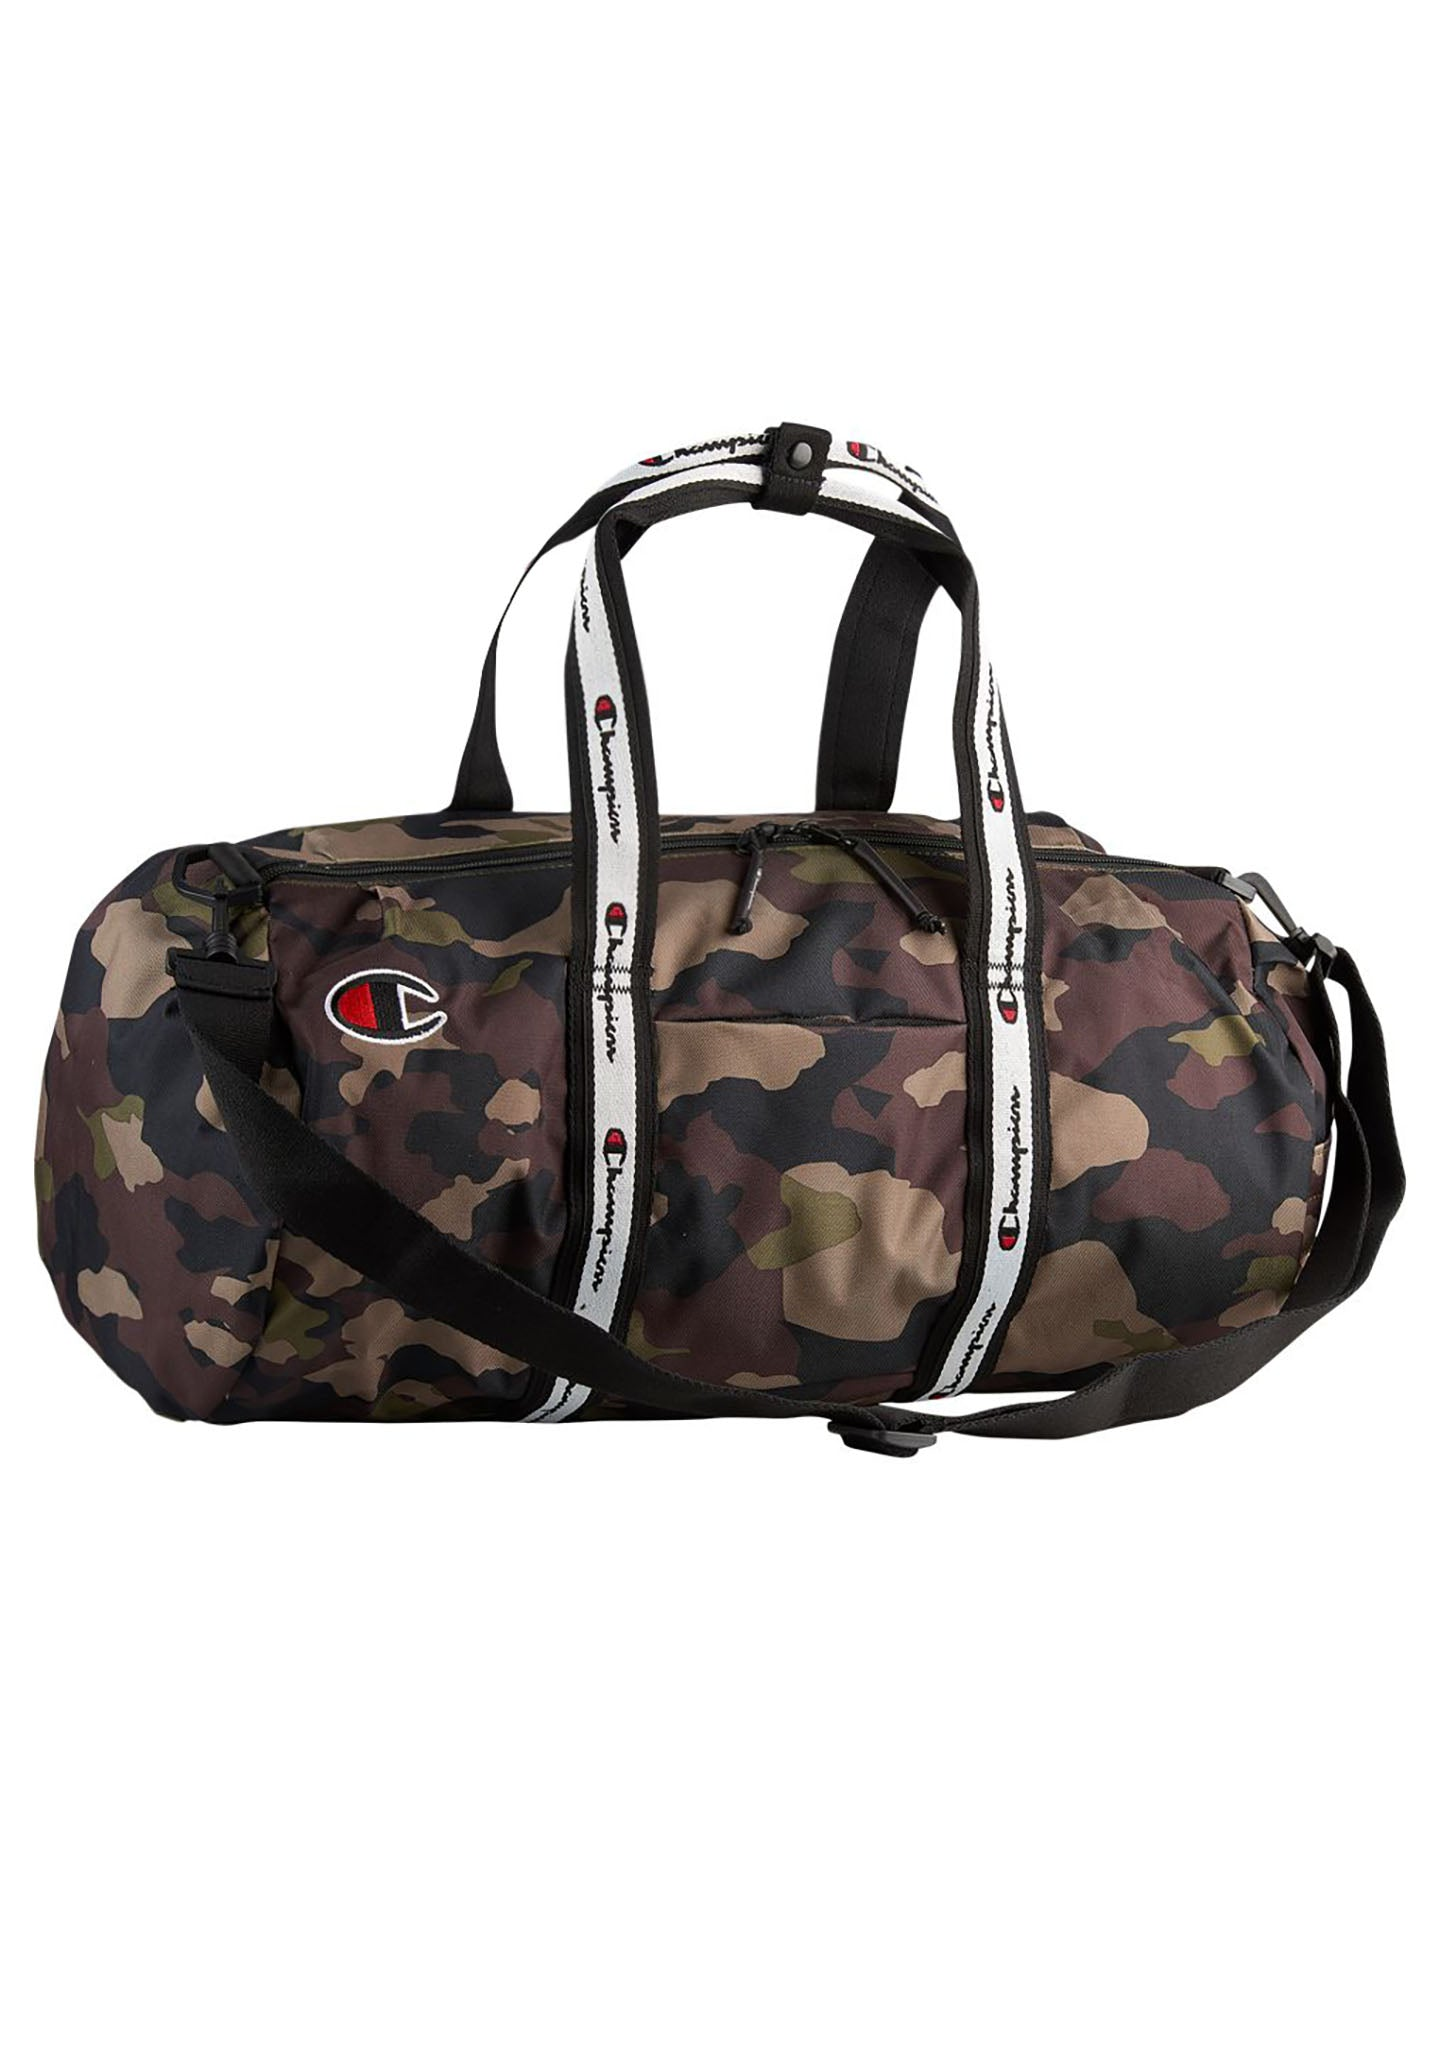 CHAMPION   Shop Champion Elect 600 Duffle Bag in Camo at LAStyleRush ... 06fc109860